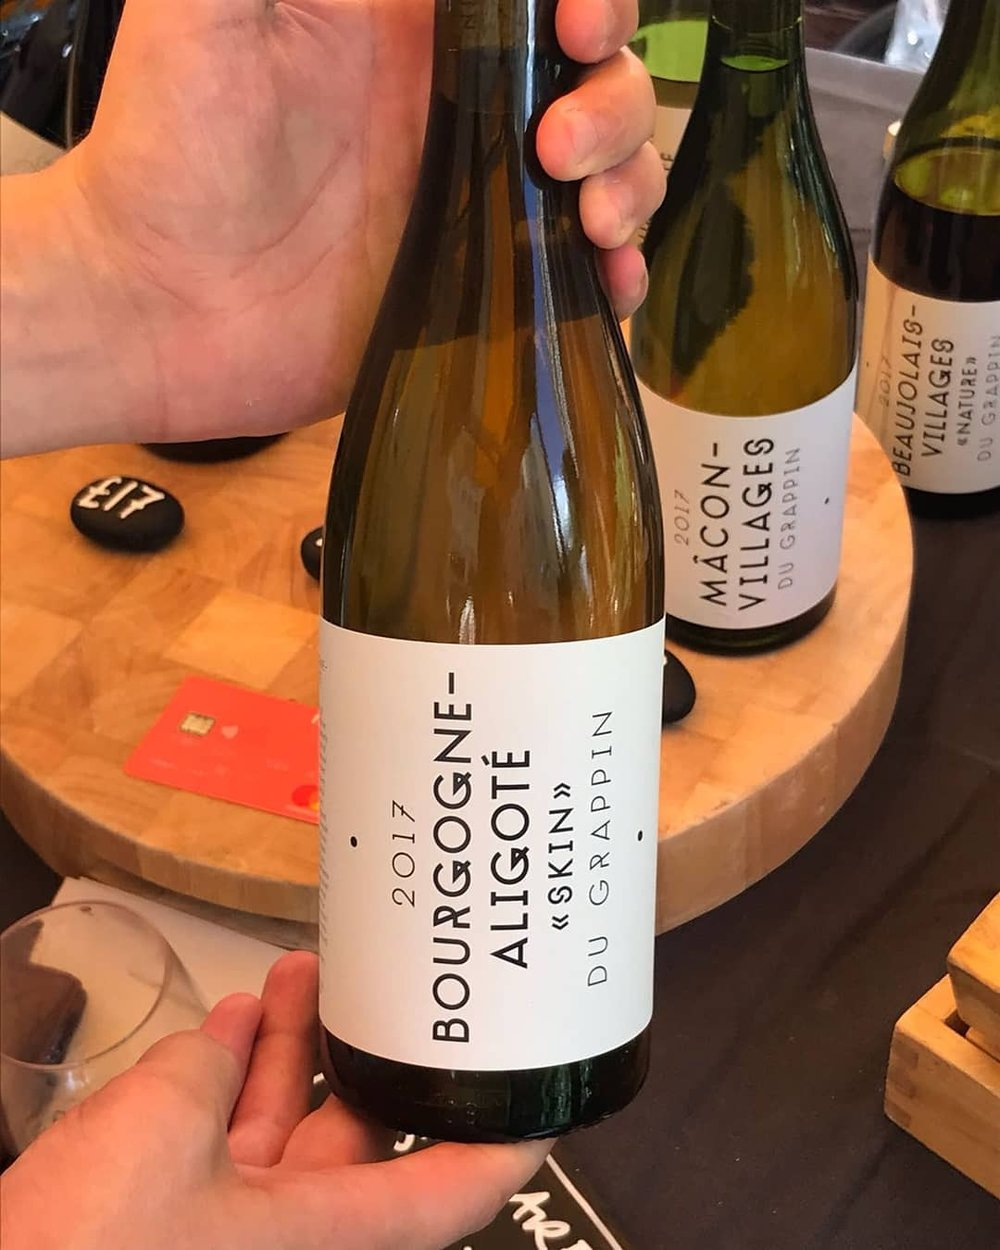 Throw back to the first #winecarboot I went to this year.  Absolutely delighted to hear the story of @legrappin wines today @winecarboot. Tasted their aligotè and gamay today and both were instant favourites for white Burgundy and red Beaujolais.  Very pleased to have bought the first bottle of the vintage! Roll on dinner later… #wine #borgogne #whitewine #aligotewine #aligote #burgundy #winecarboot #wines #winestagram #skincontactwine #lowintervention